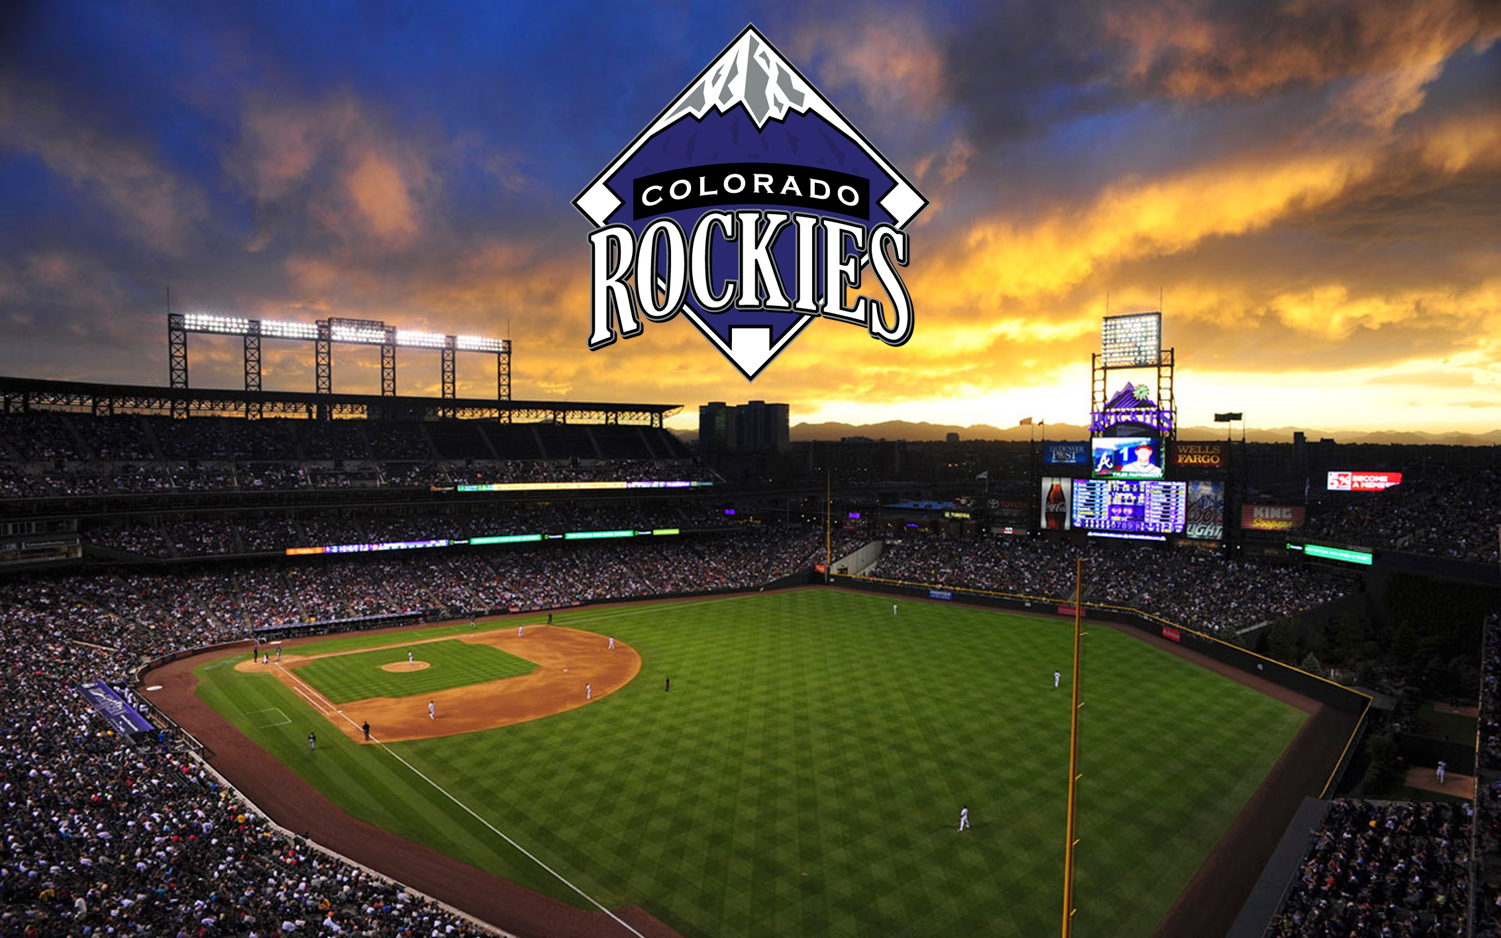 Best of luck to the Colorado Rockies as they start 2016 on